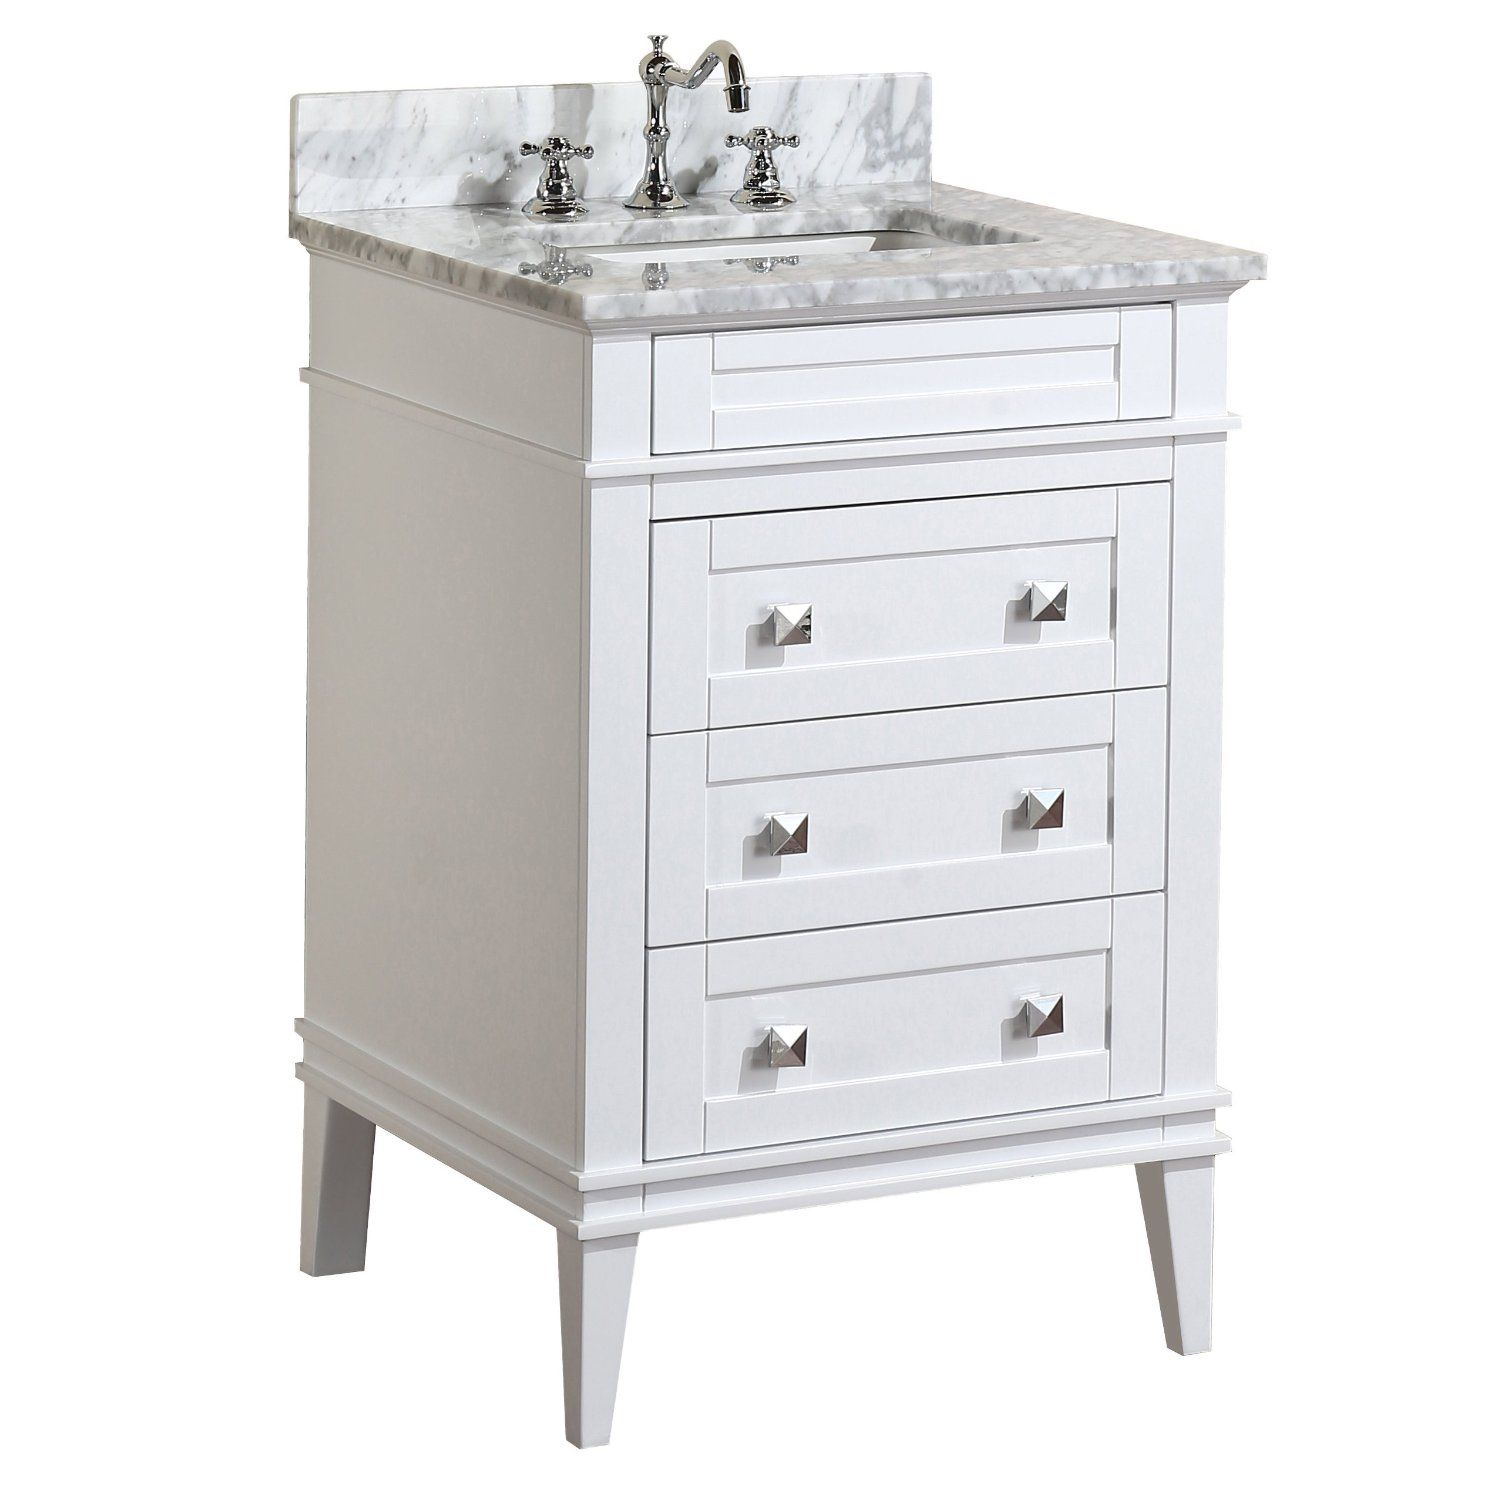 Eleanor 24 inch bathroom vanity carrara white includes for Bathroom 24 inch vanity